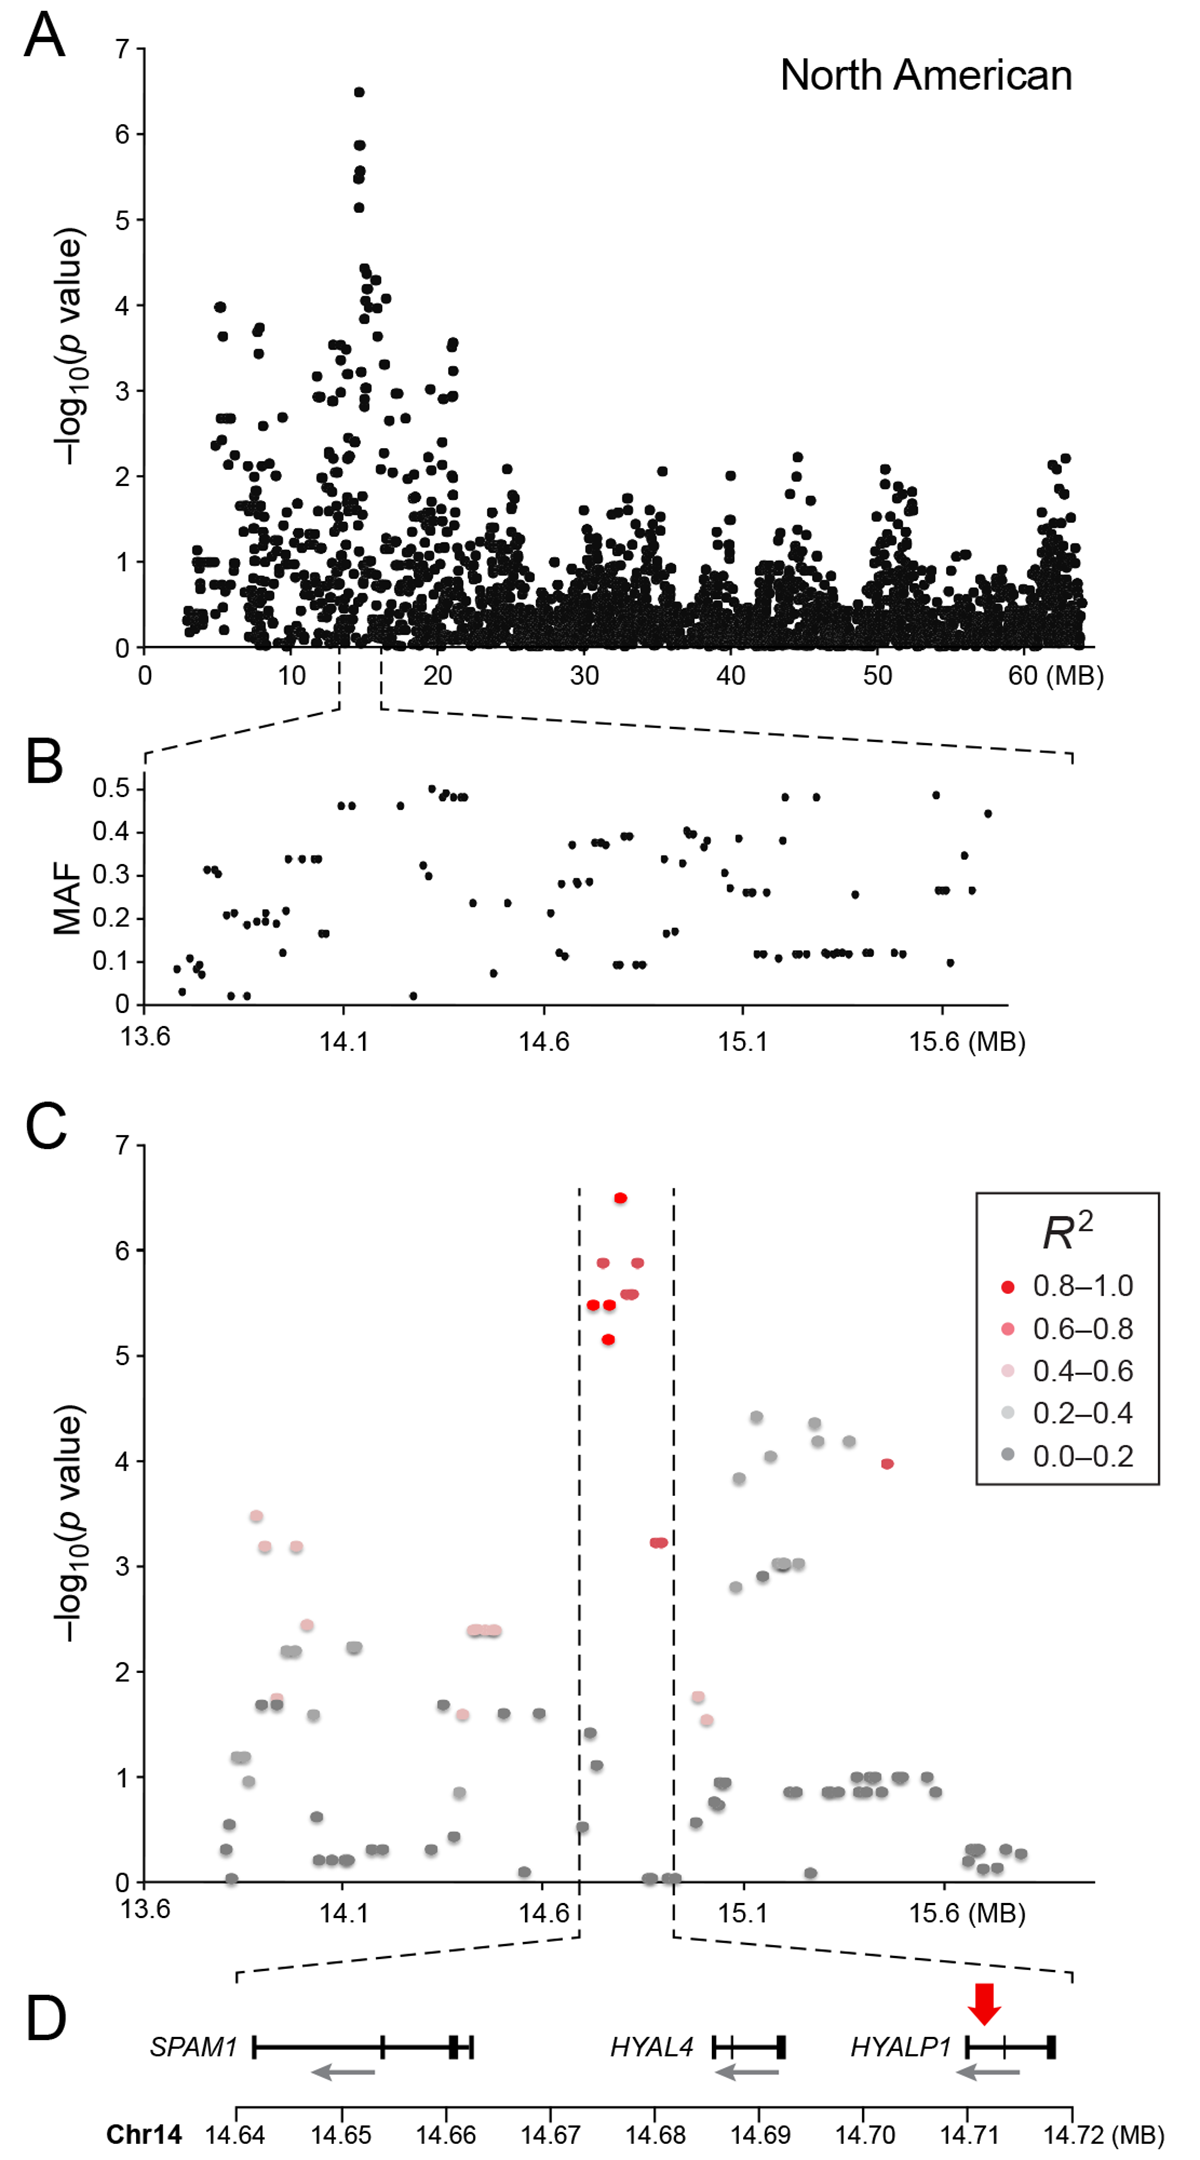 a) Close up view of the most associated region from the American GWAS analysis. b) Minor allele frequency of the associated region. c) Further close up of the associated peak showing the LD structure of the SNPs in the area relative to the most associated SNP. d) Close up view of the genes located in the area of the associated haplotype.